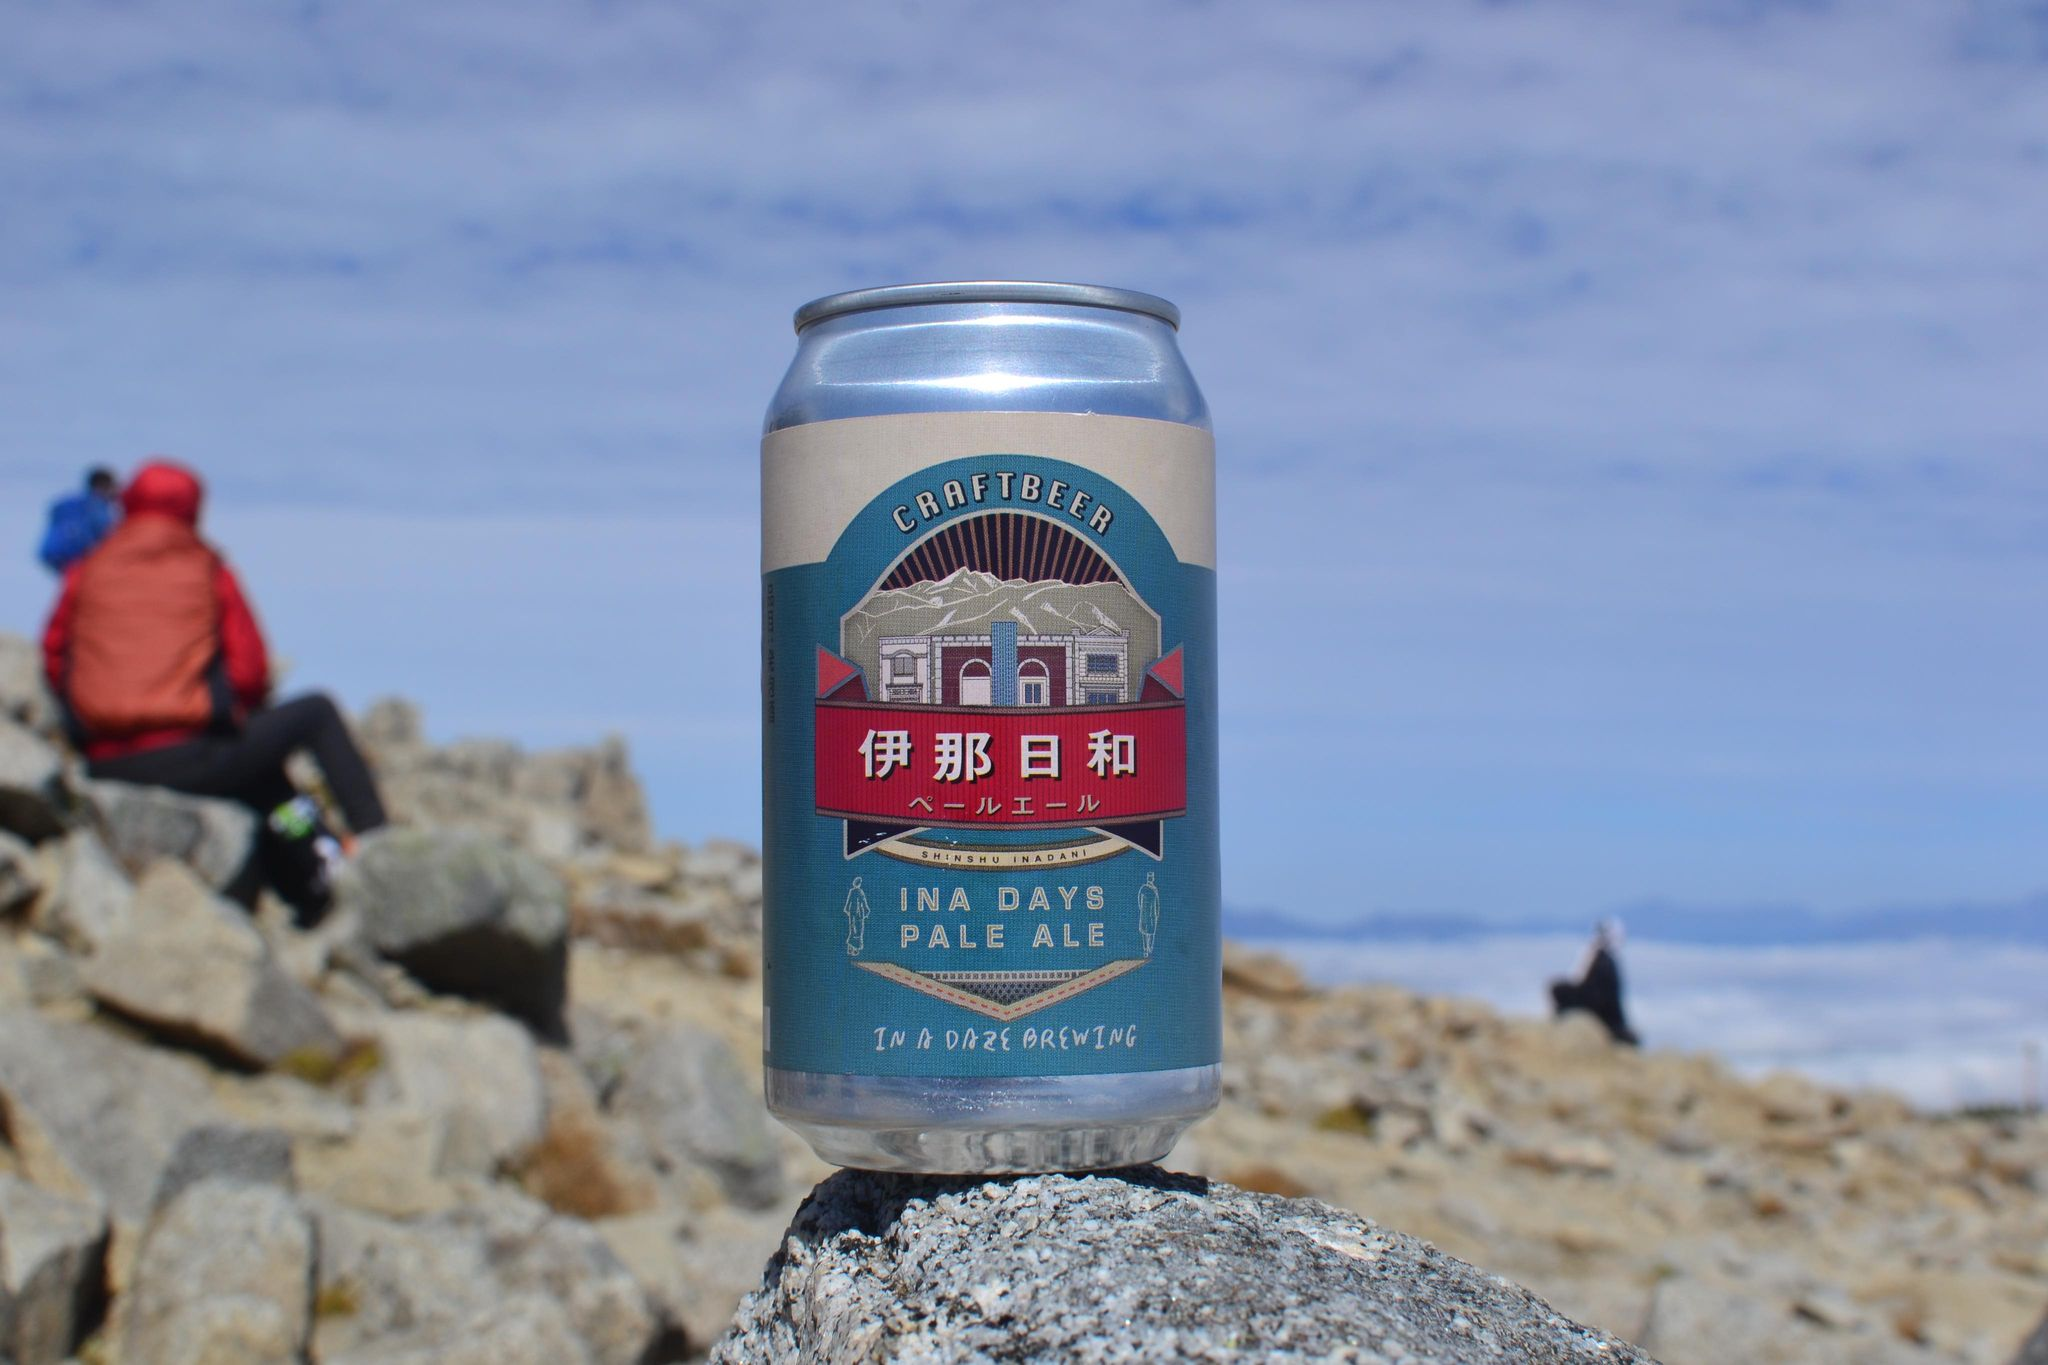 https://cdn11.bigcommerce.com/s-mzufg65qhz/product_images/uploaded_images/ina-days-pale-ale-can-on-mt-komagatake.jpg